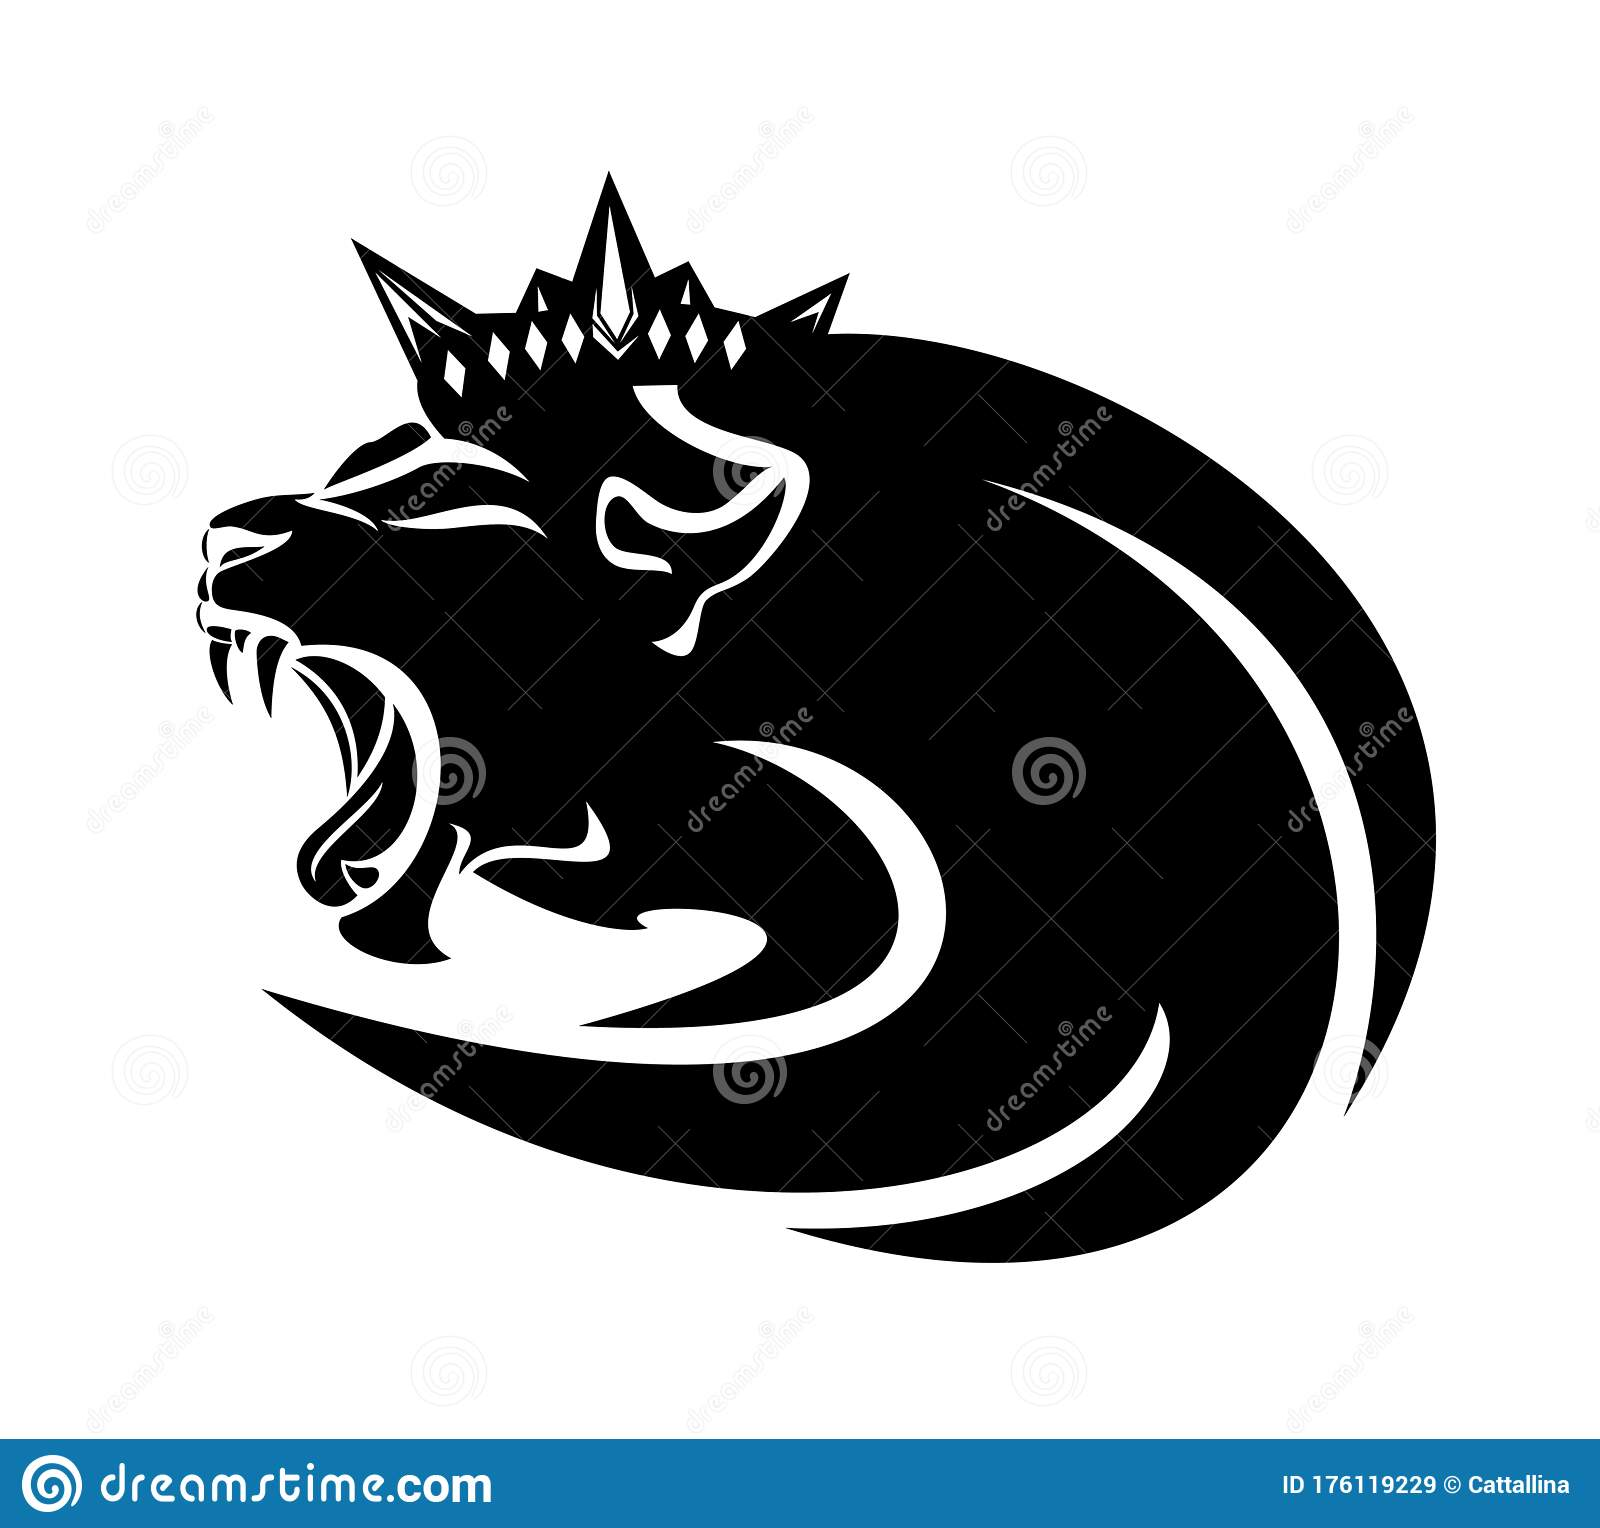 Roaring Lion Outline Stock Illustrations 217 Roaring Lion Outline Stock Illustrations Vectors Clipart Dreamstime Whatever we can do to produce something very similar without any infringements will be perfect. dreamstime com